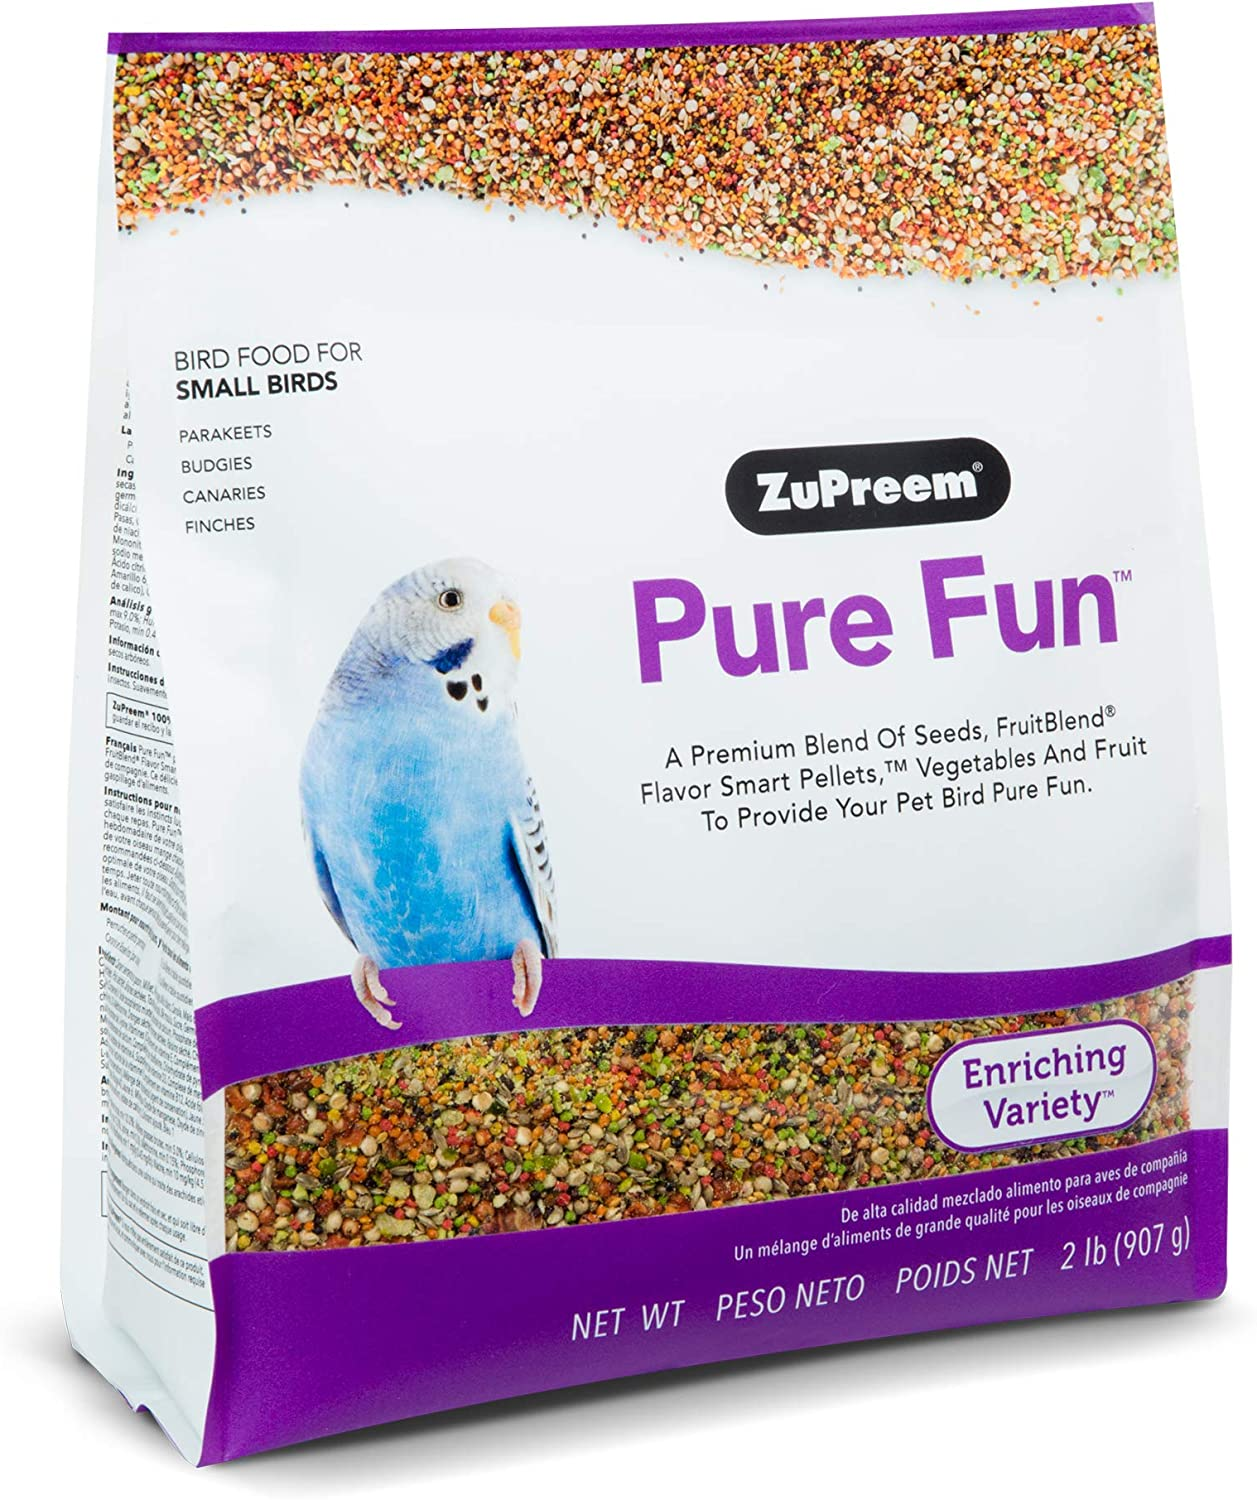 ZuPreem Pure Fun Bird Food for Small Birds, 2 lb Bag | Powerful Blend of Seeds, Natural FruitBlend Pellets, Vegetables, Fruit for Parakeets, Budgies, Parrotlets, Canaries, Finches